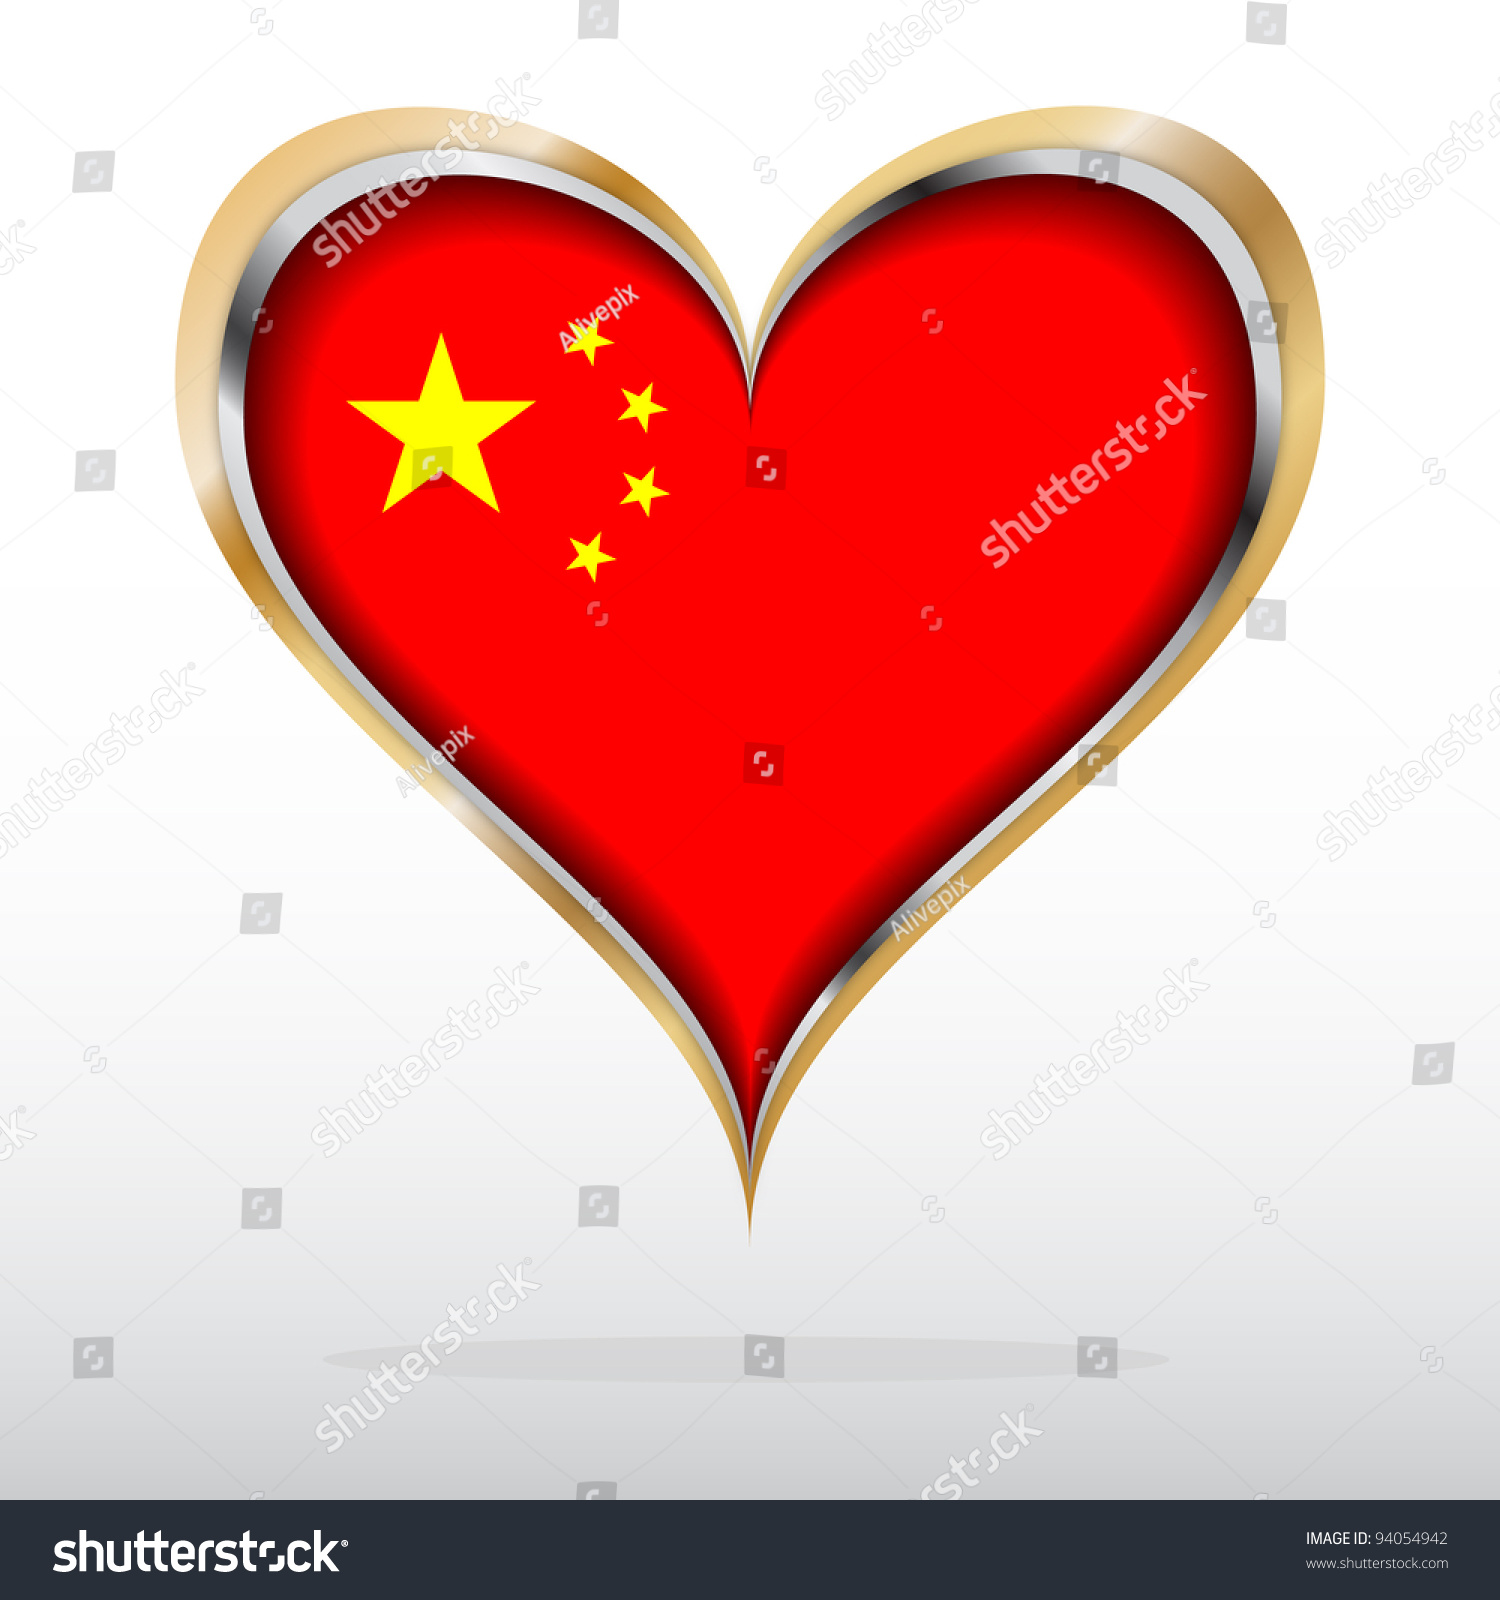 Vector Illustration Chinese Flag Golden Heart Stock Vector 94054942 ...